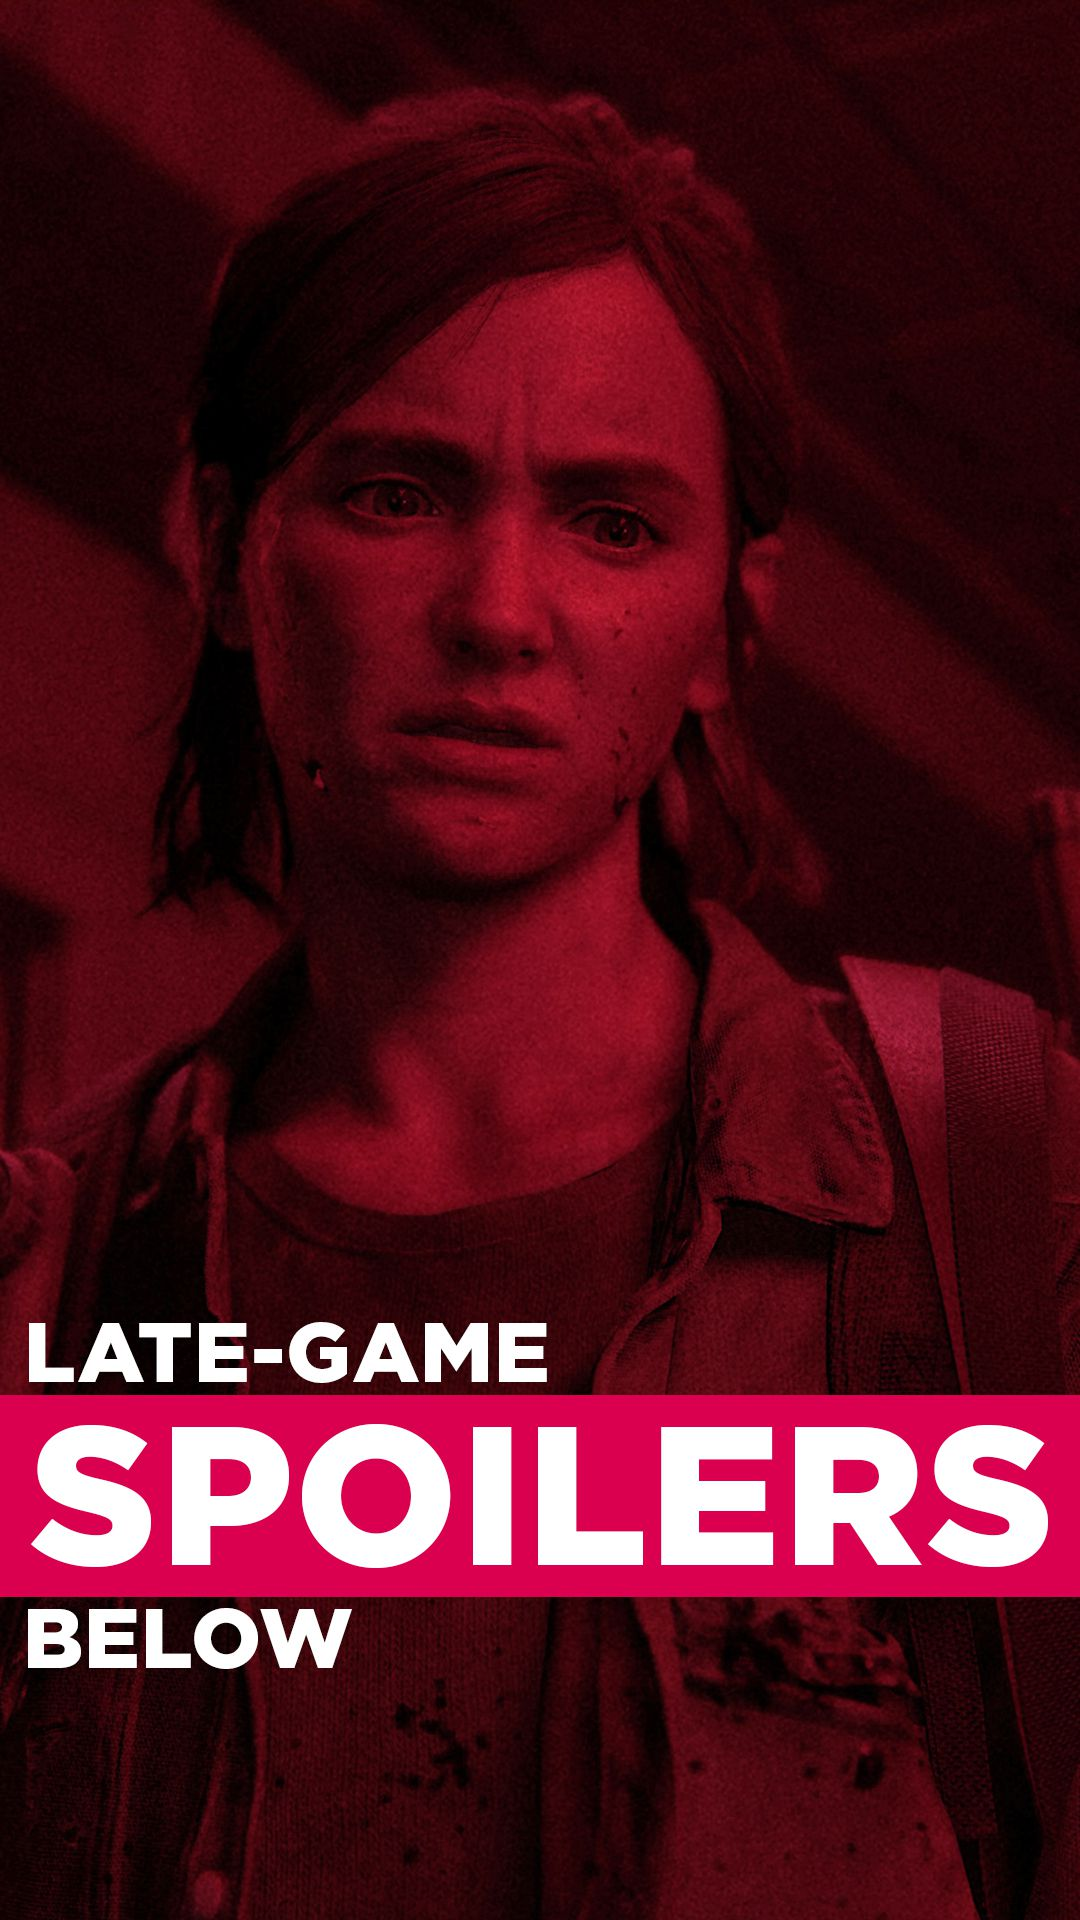 The Last of Us Part 2 spoiler image